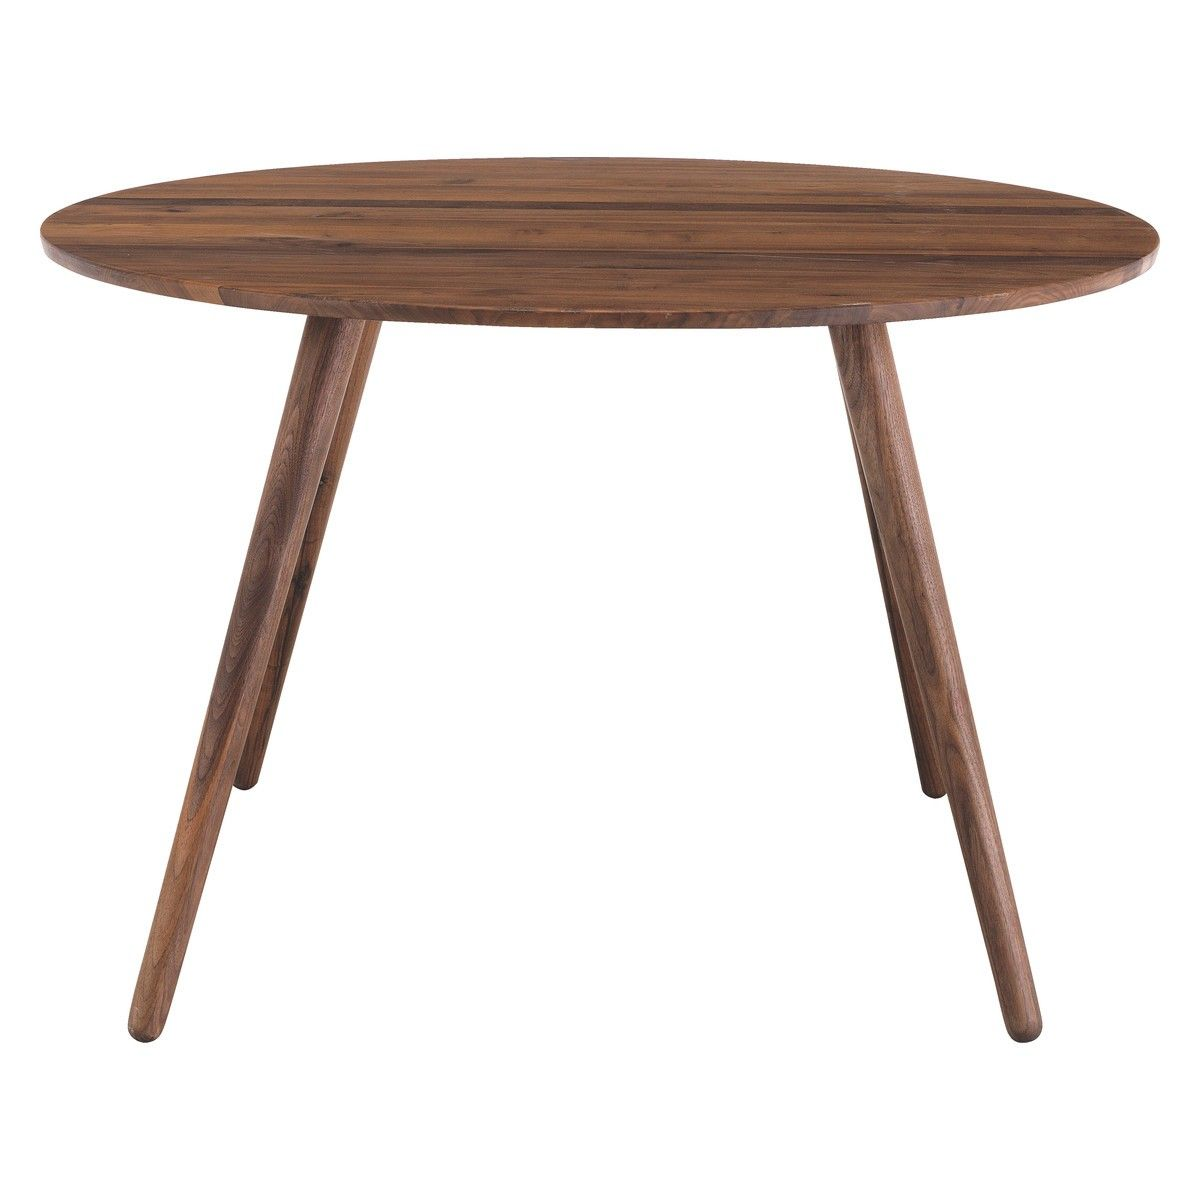 Round walnut dining table - Vince 4 Seat Round Walnut Dining Table